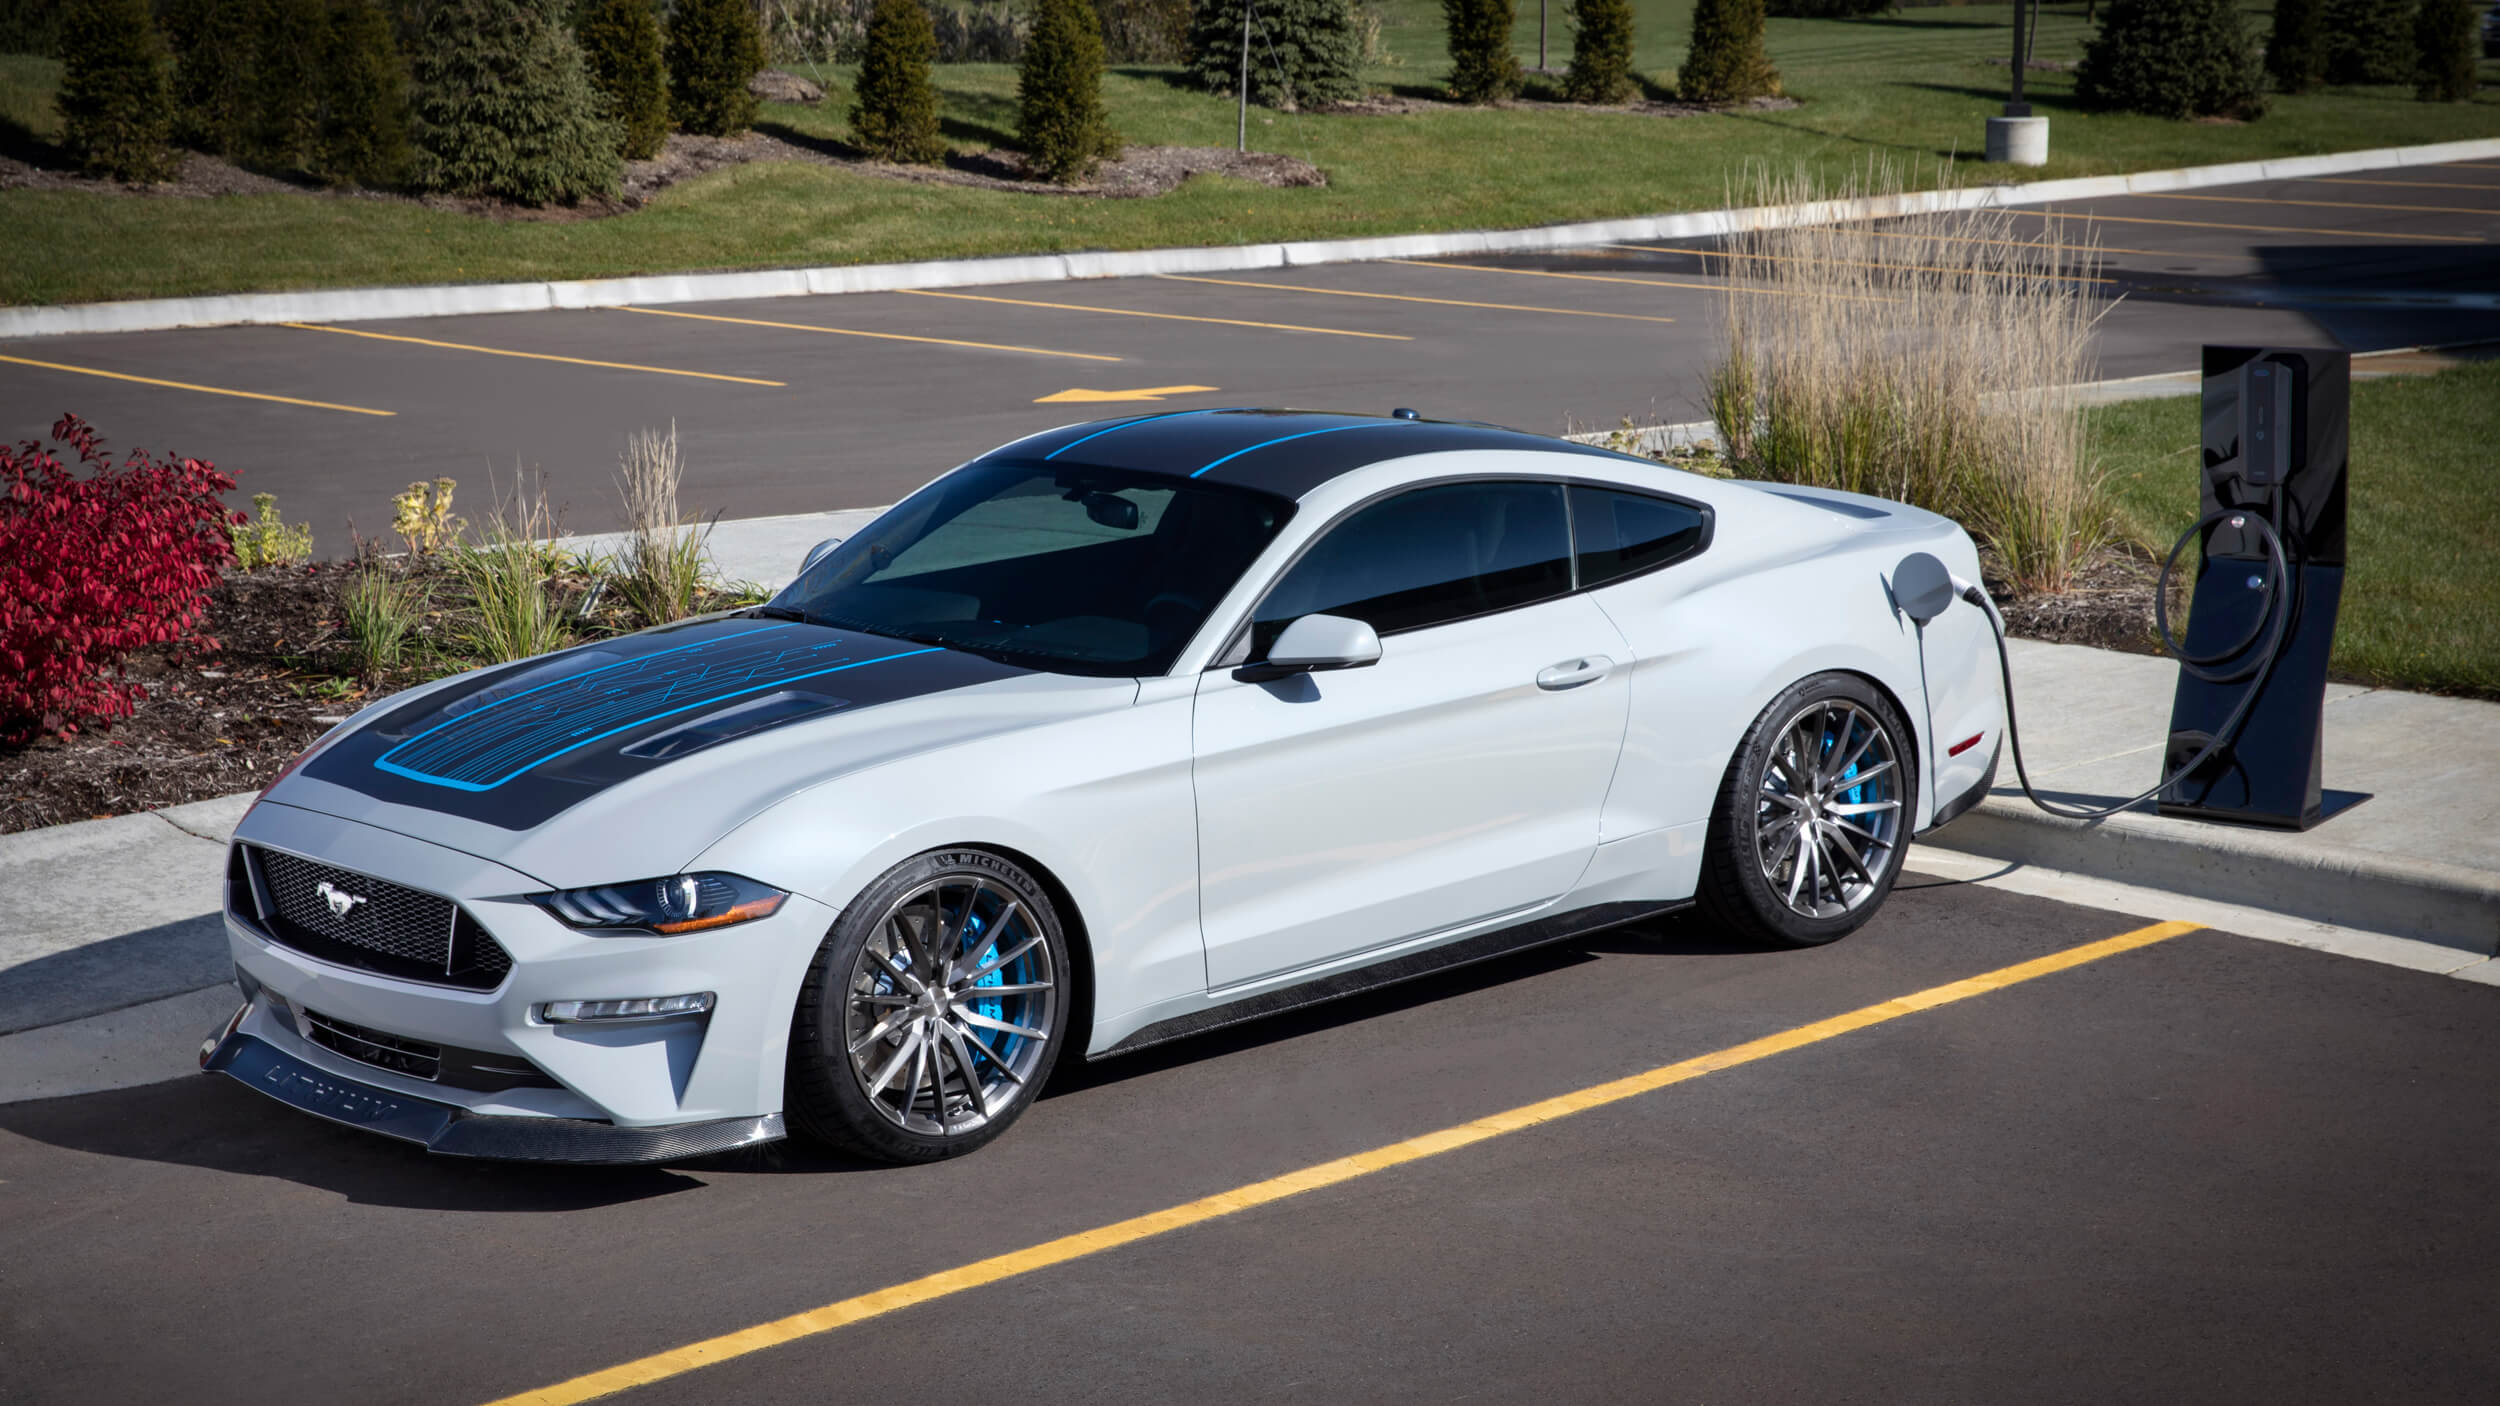 Ford makes one-off electric Mustang with 900 hp and a manual transmission